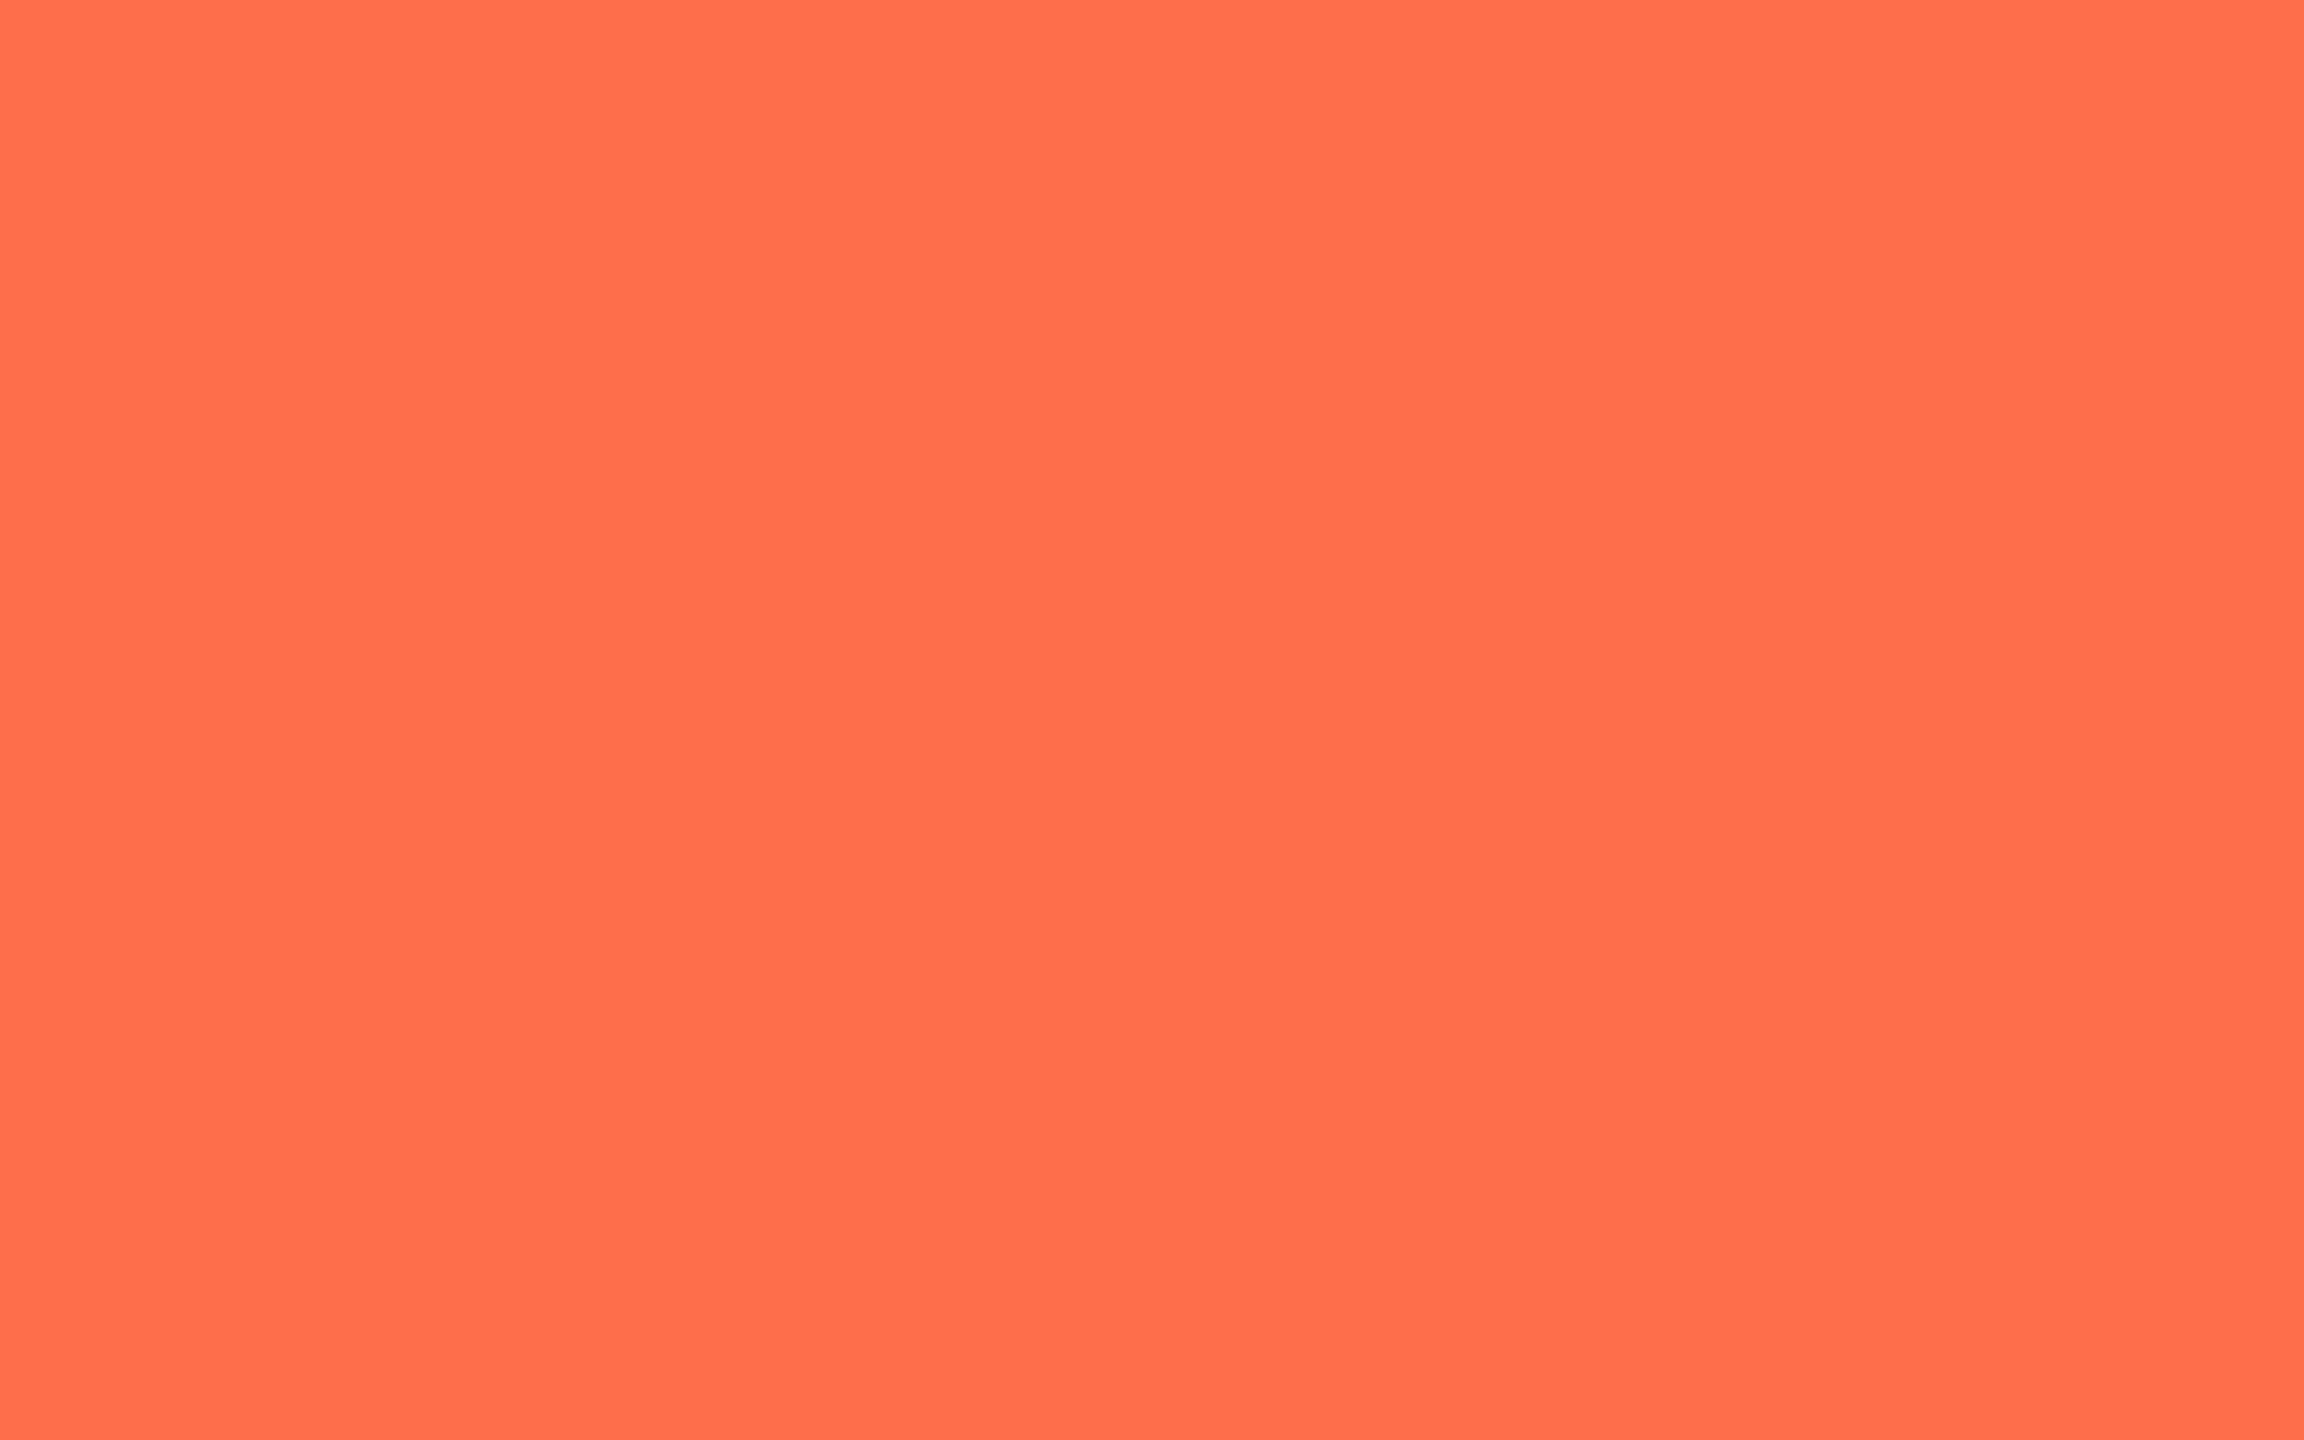 2304x1440 Outrageous Orange Solid Color Background